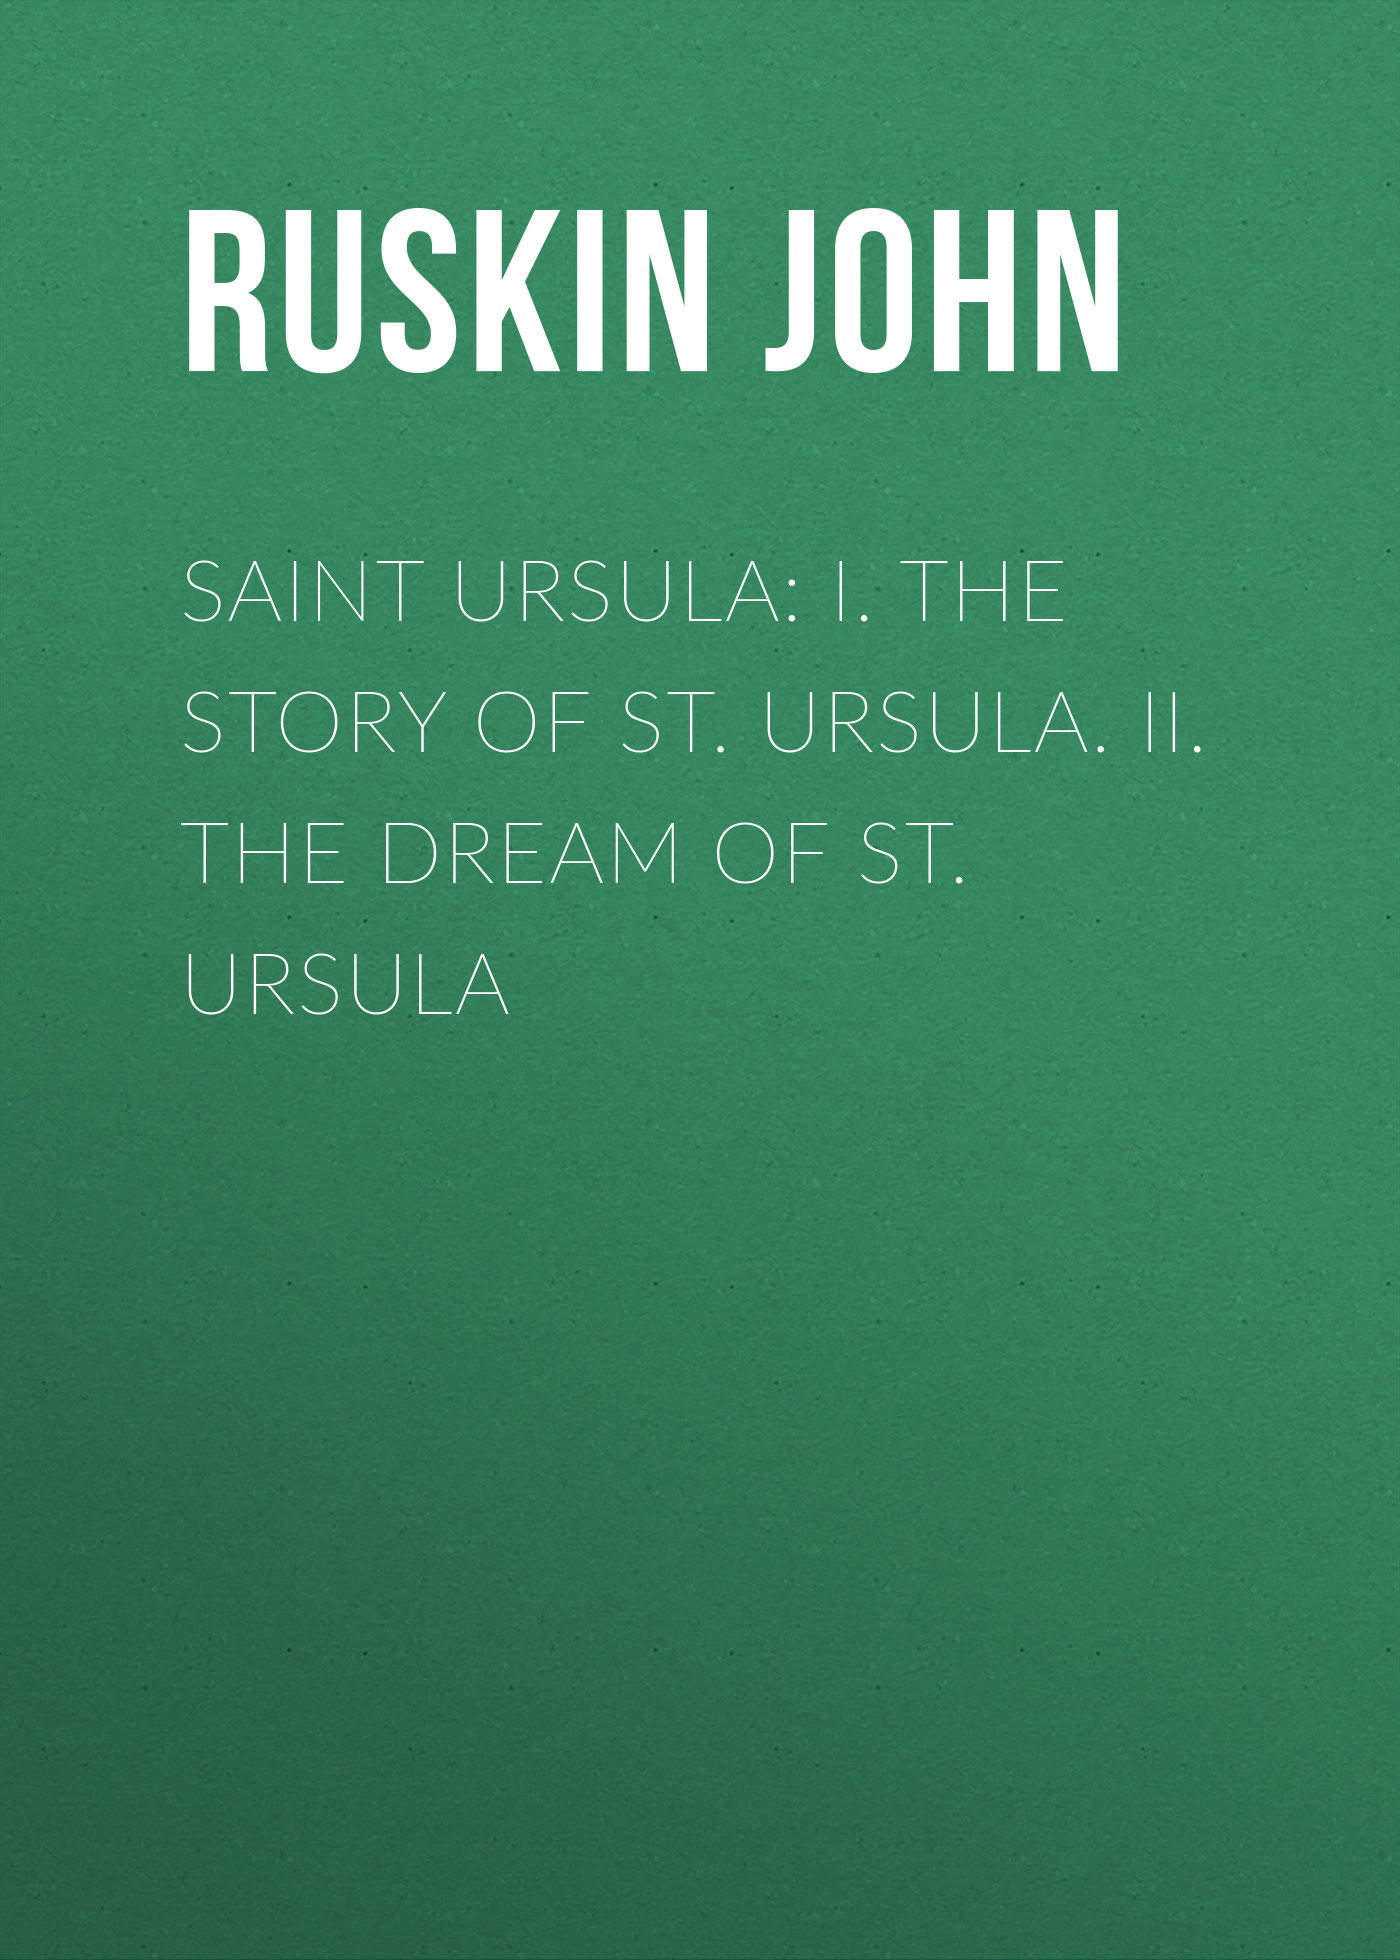 лучшая цена Ruskin John Saint Ursula: I. The Story of St. Ursula. II. The Dream of St. Ursula